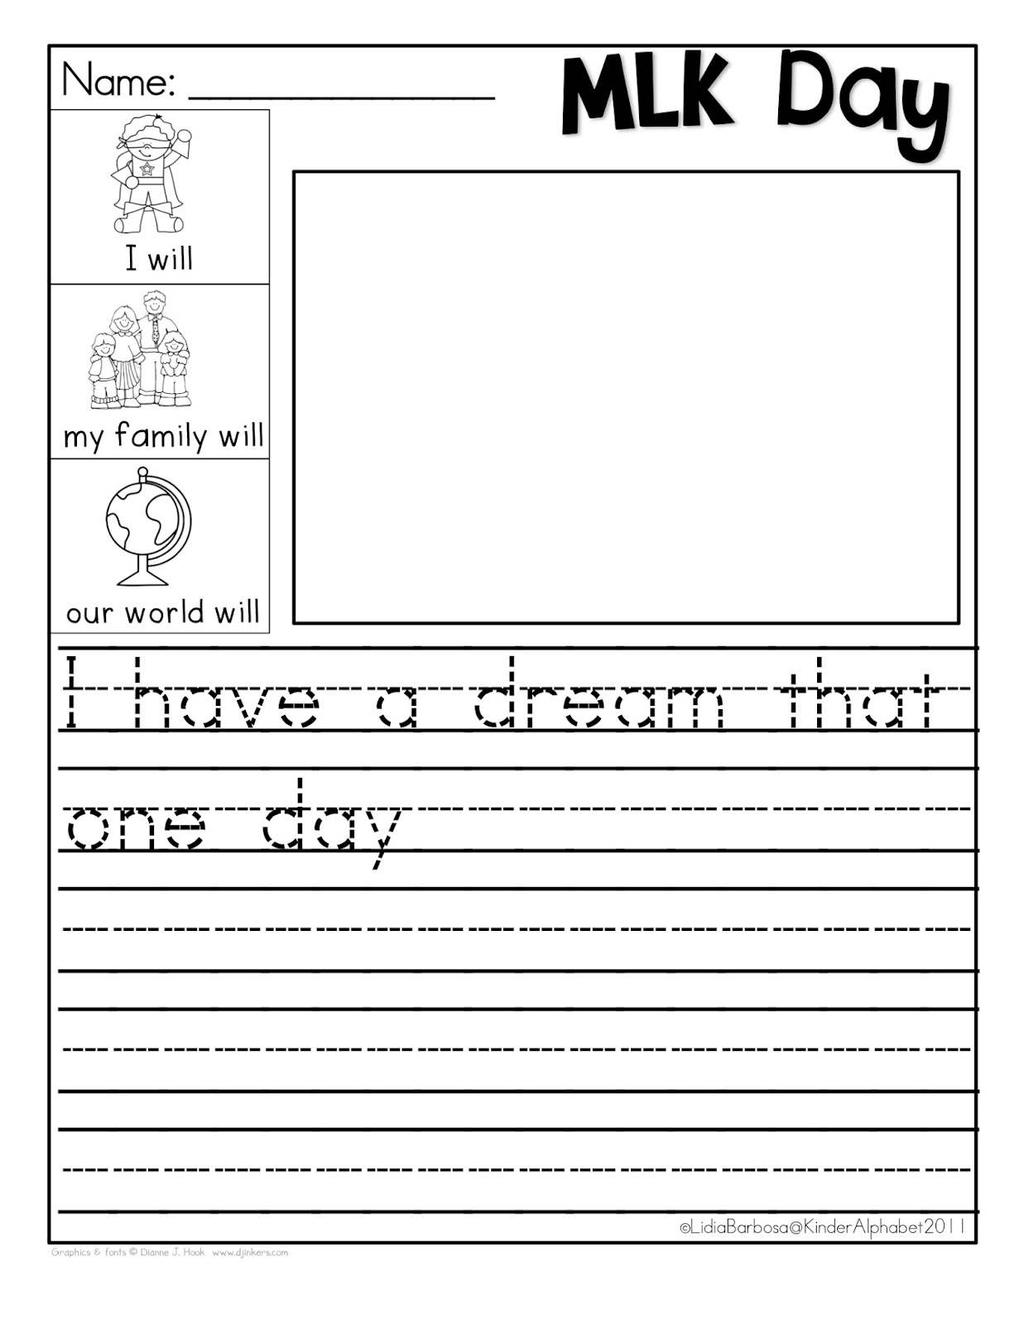 Martin Luther King Jr Day Coloring Pages Martin Luther King Jr Day